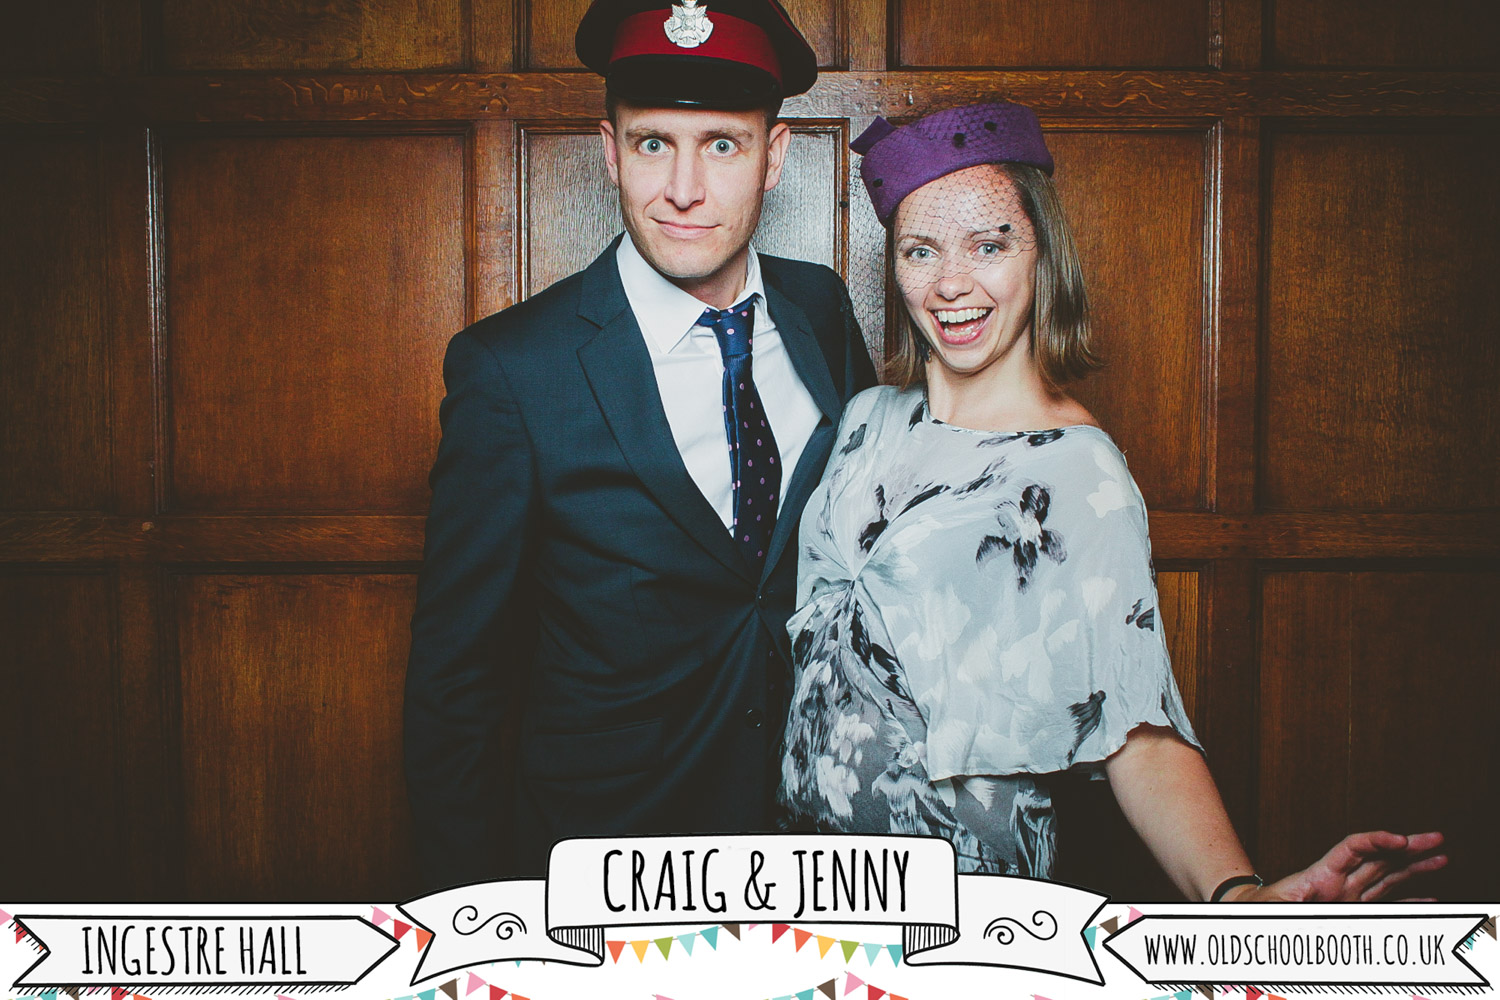 ingestre hall photo booth